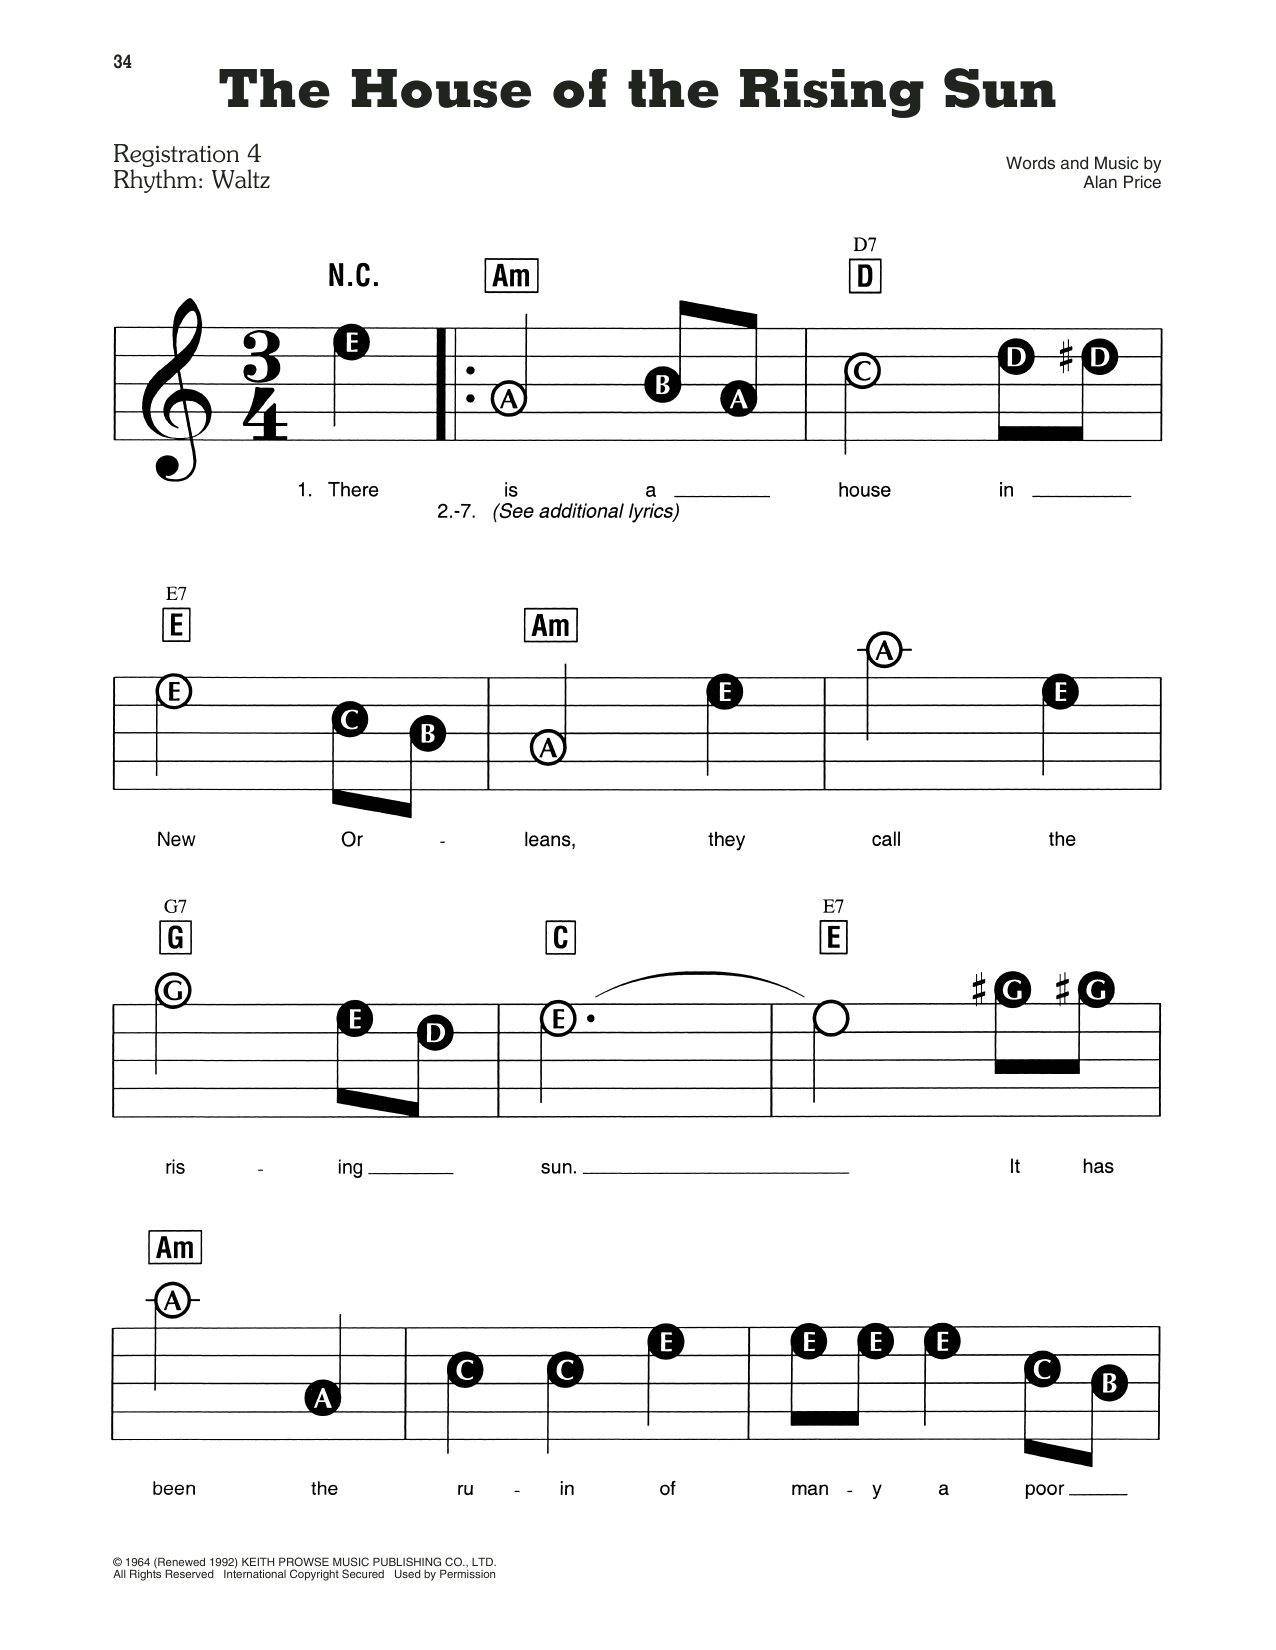 The Animals The House Of The Rising Sun Sheet Music Download Pdf Score 157194,Mirrored Bathroom Cabinets Ikea